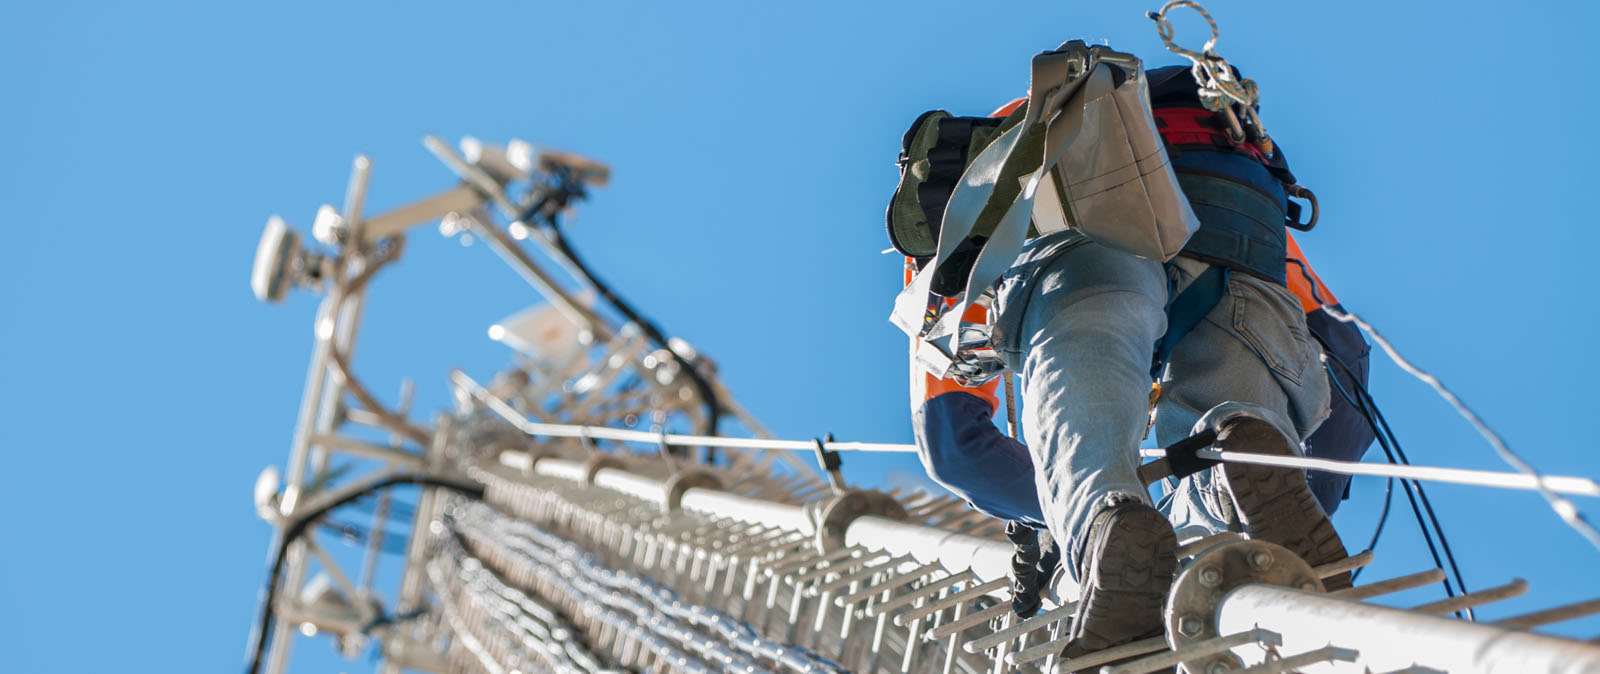 fall protection -